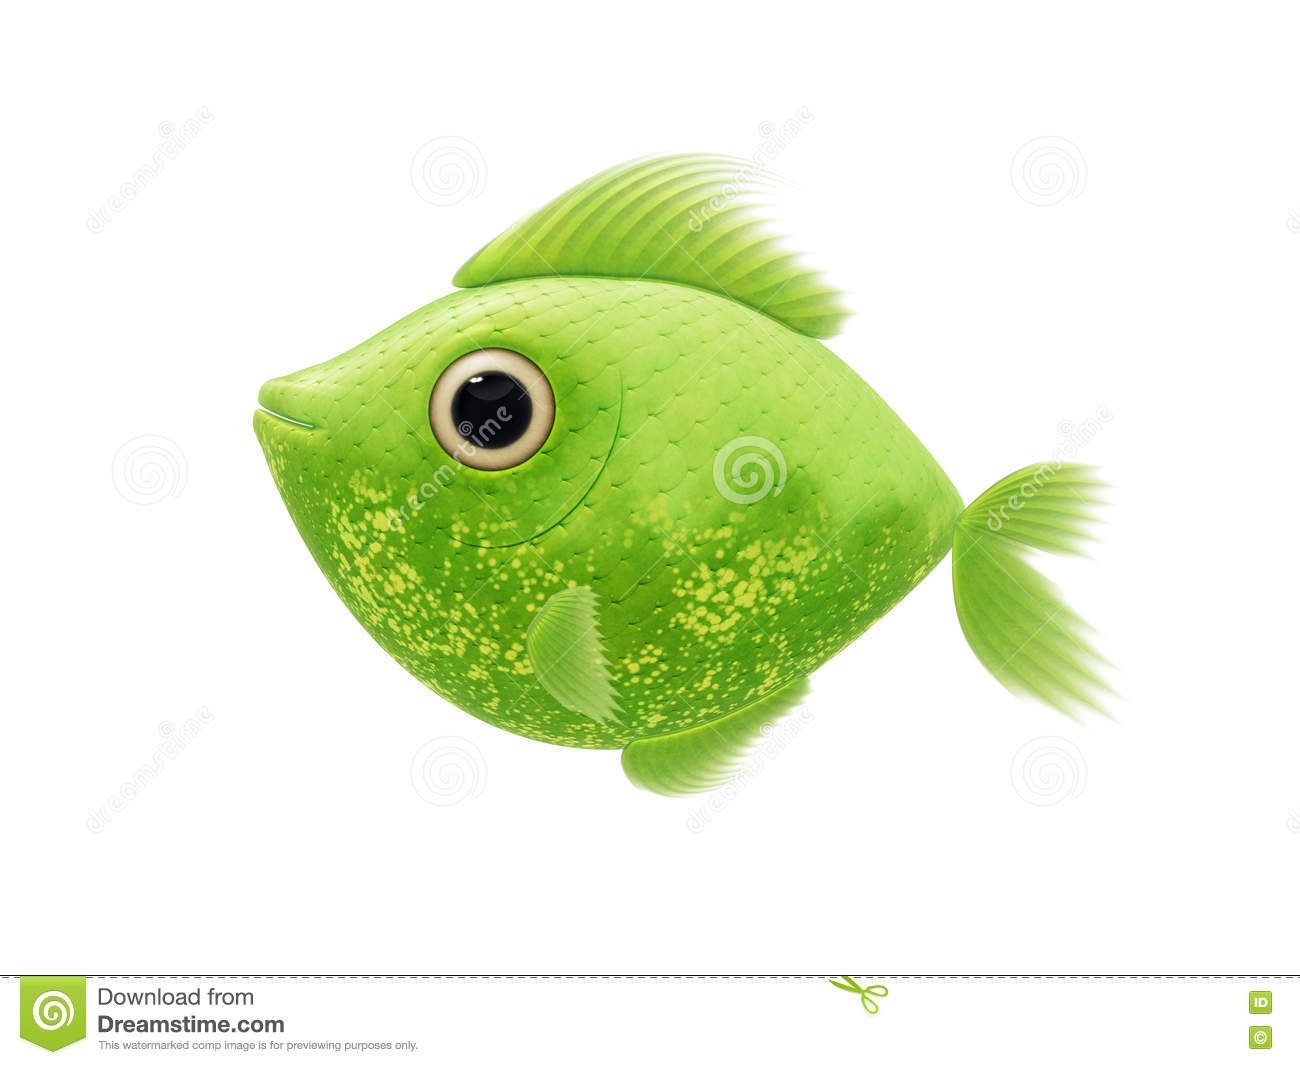 Green fish stock illustration. Illustration of fishing - 73140483